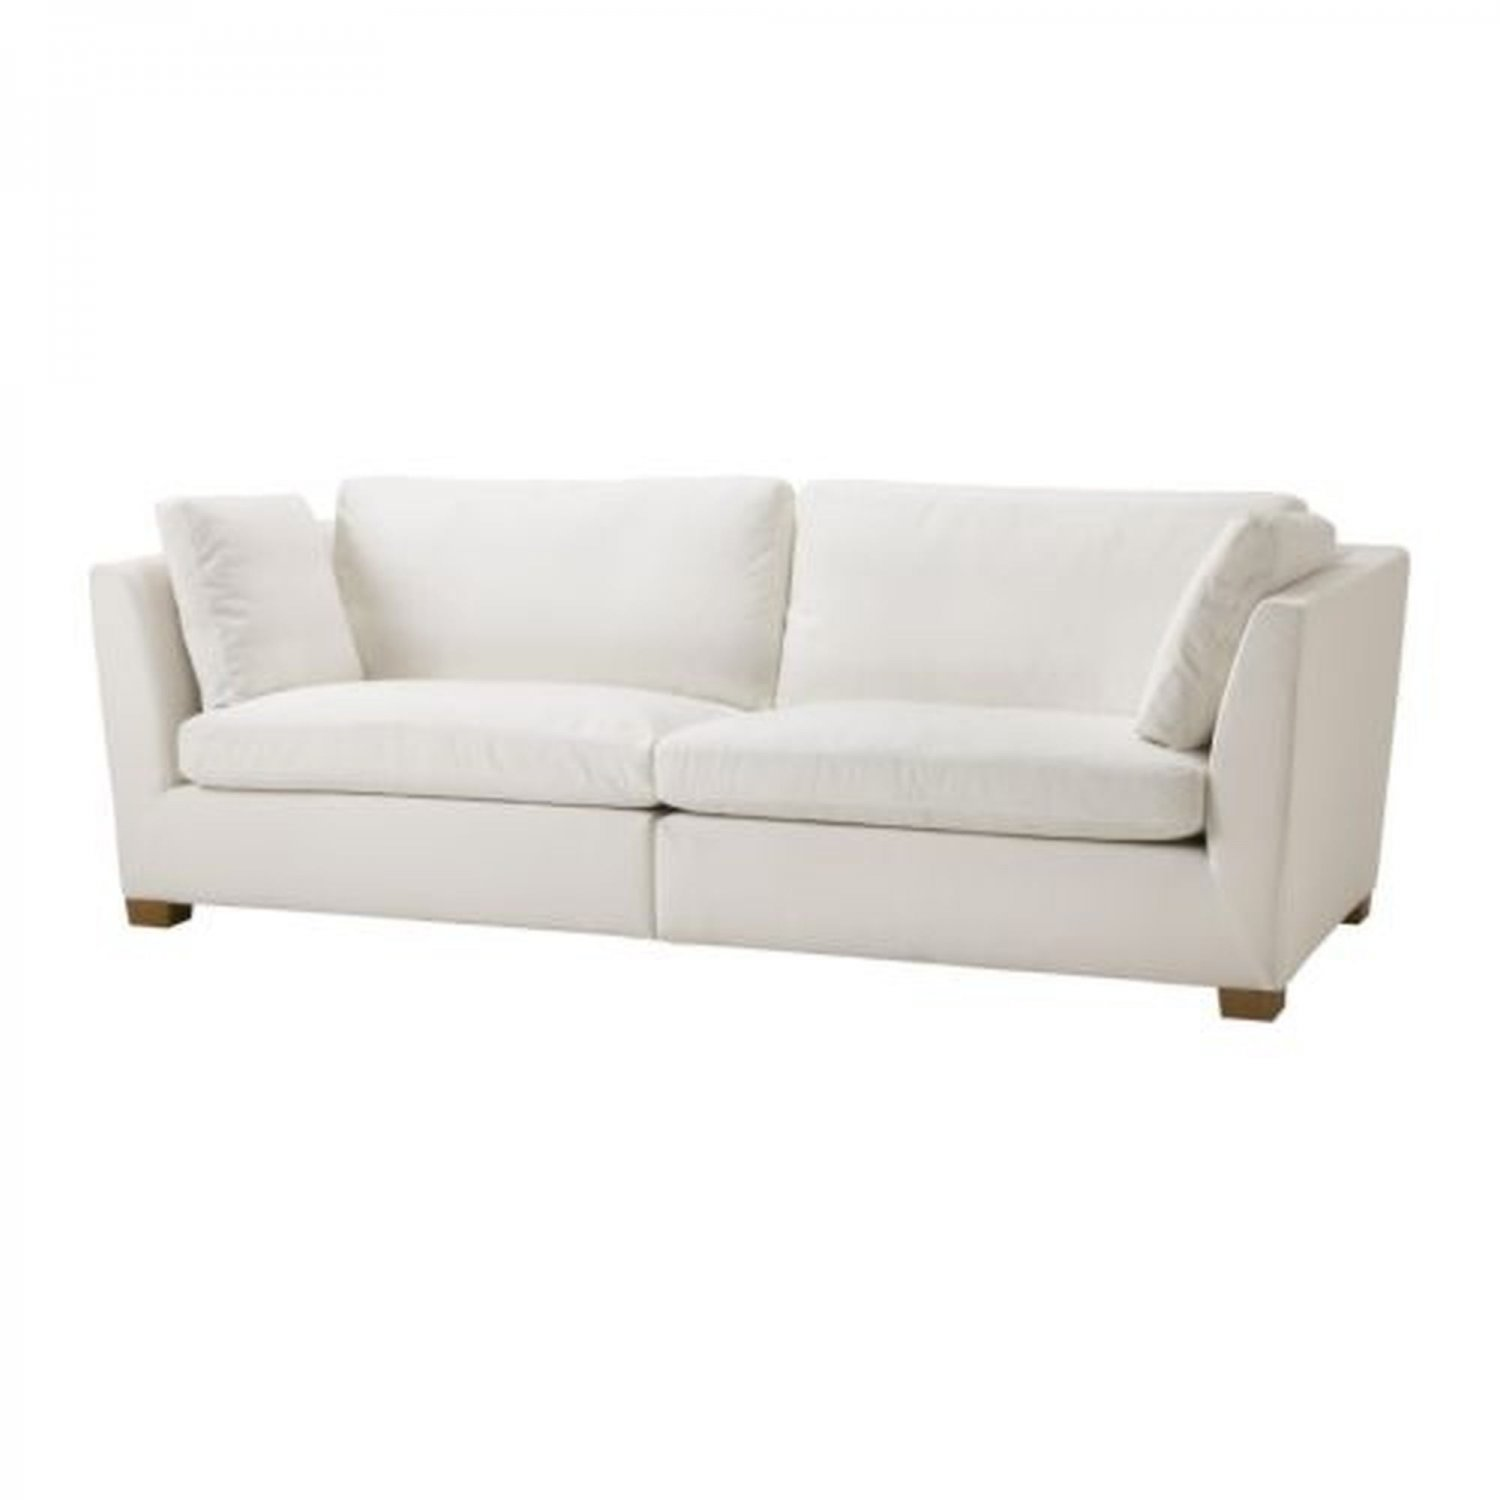 Ikea stockholm 3 5 seat sofa slipcover cover rostanga for Ikea divan